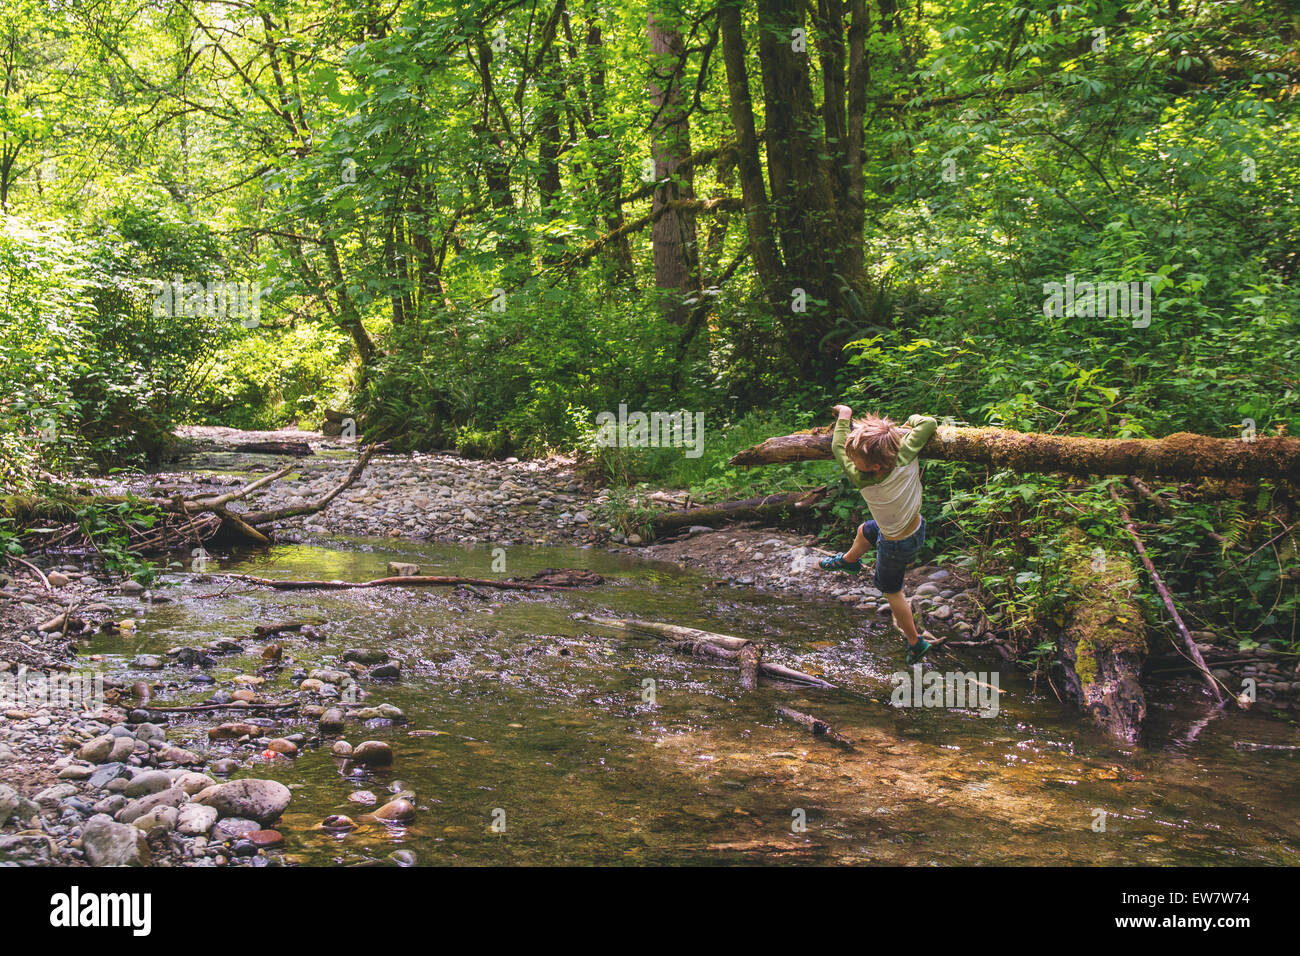 Boy hanging on fallen tree across small river - Stock Image